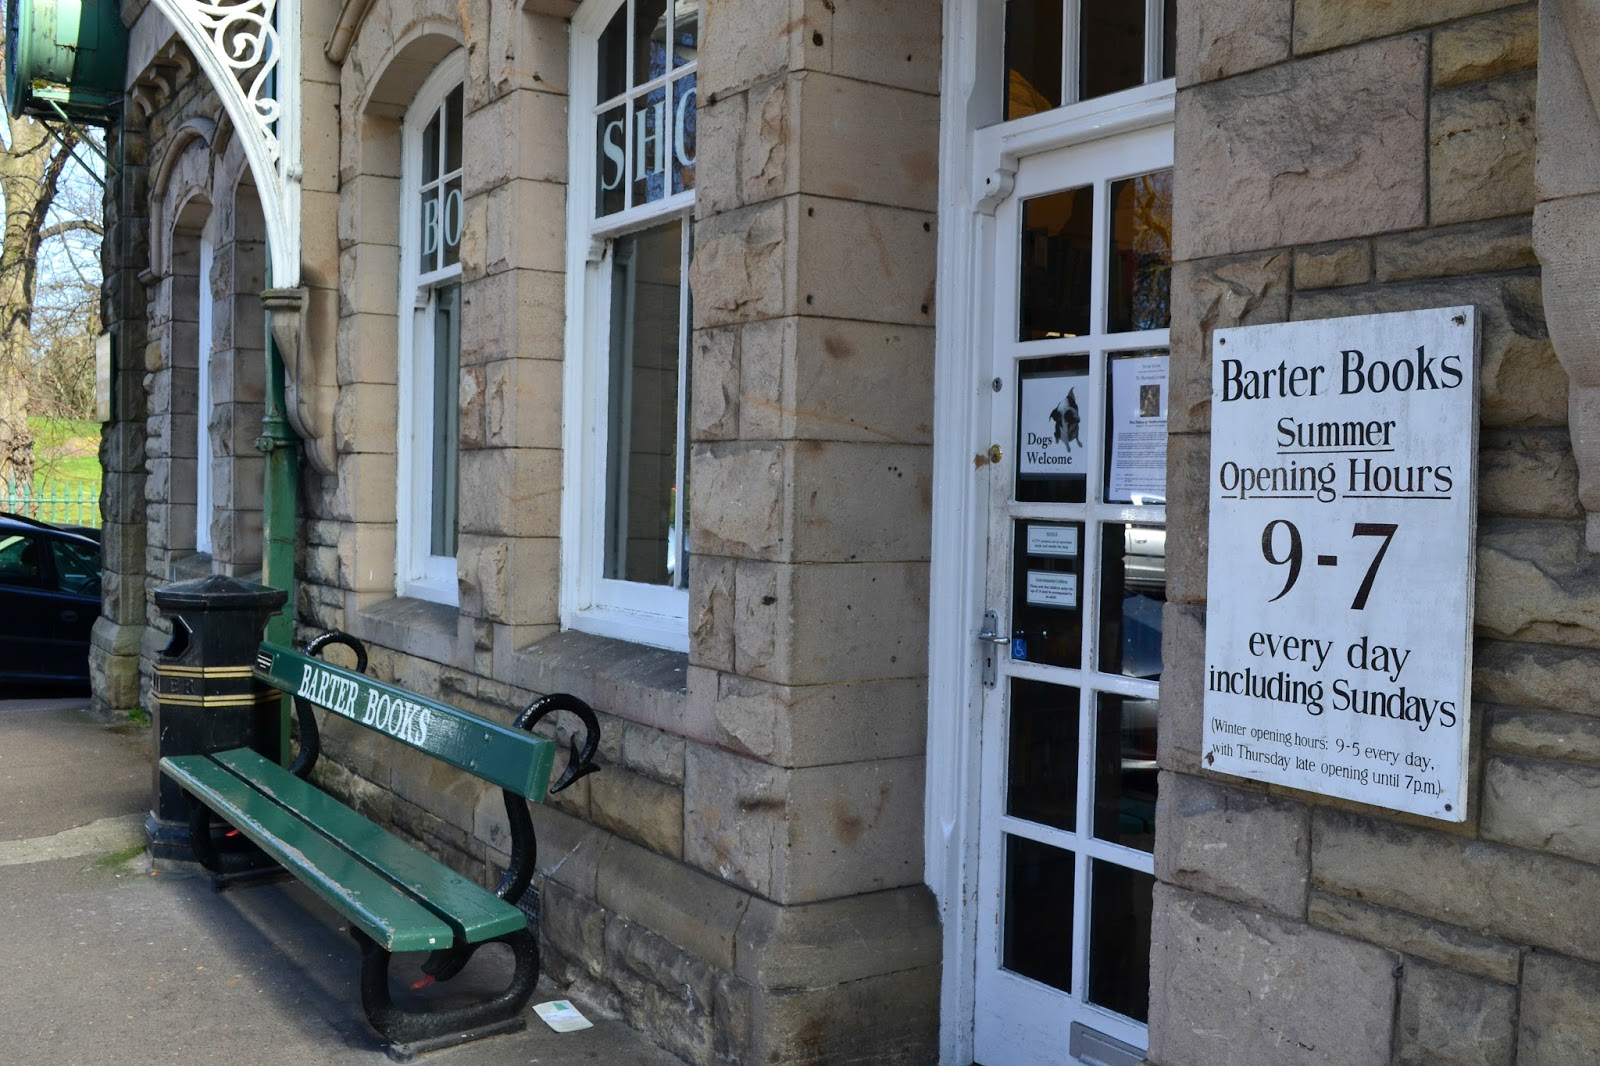 The outside of Barter Books with the opening times and bench